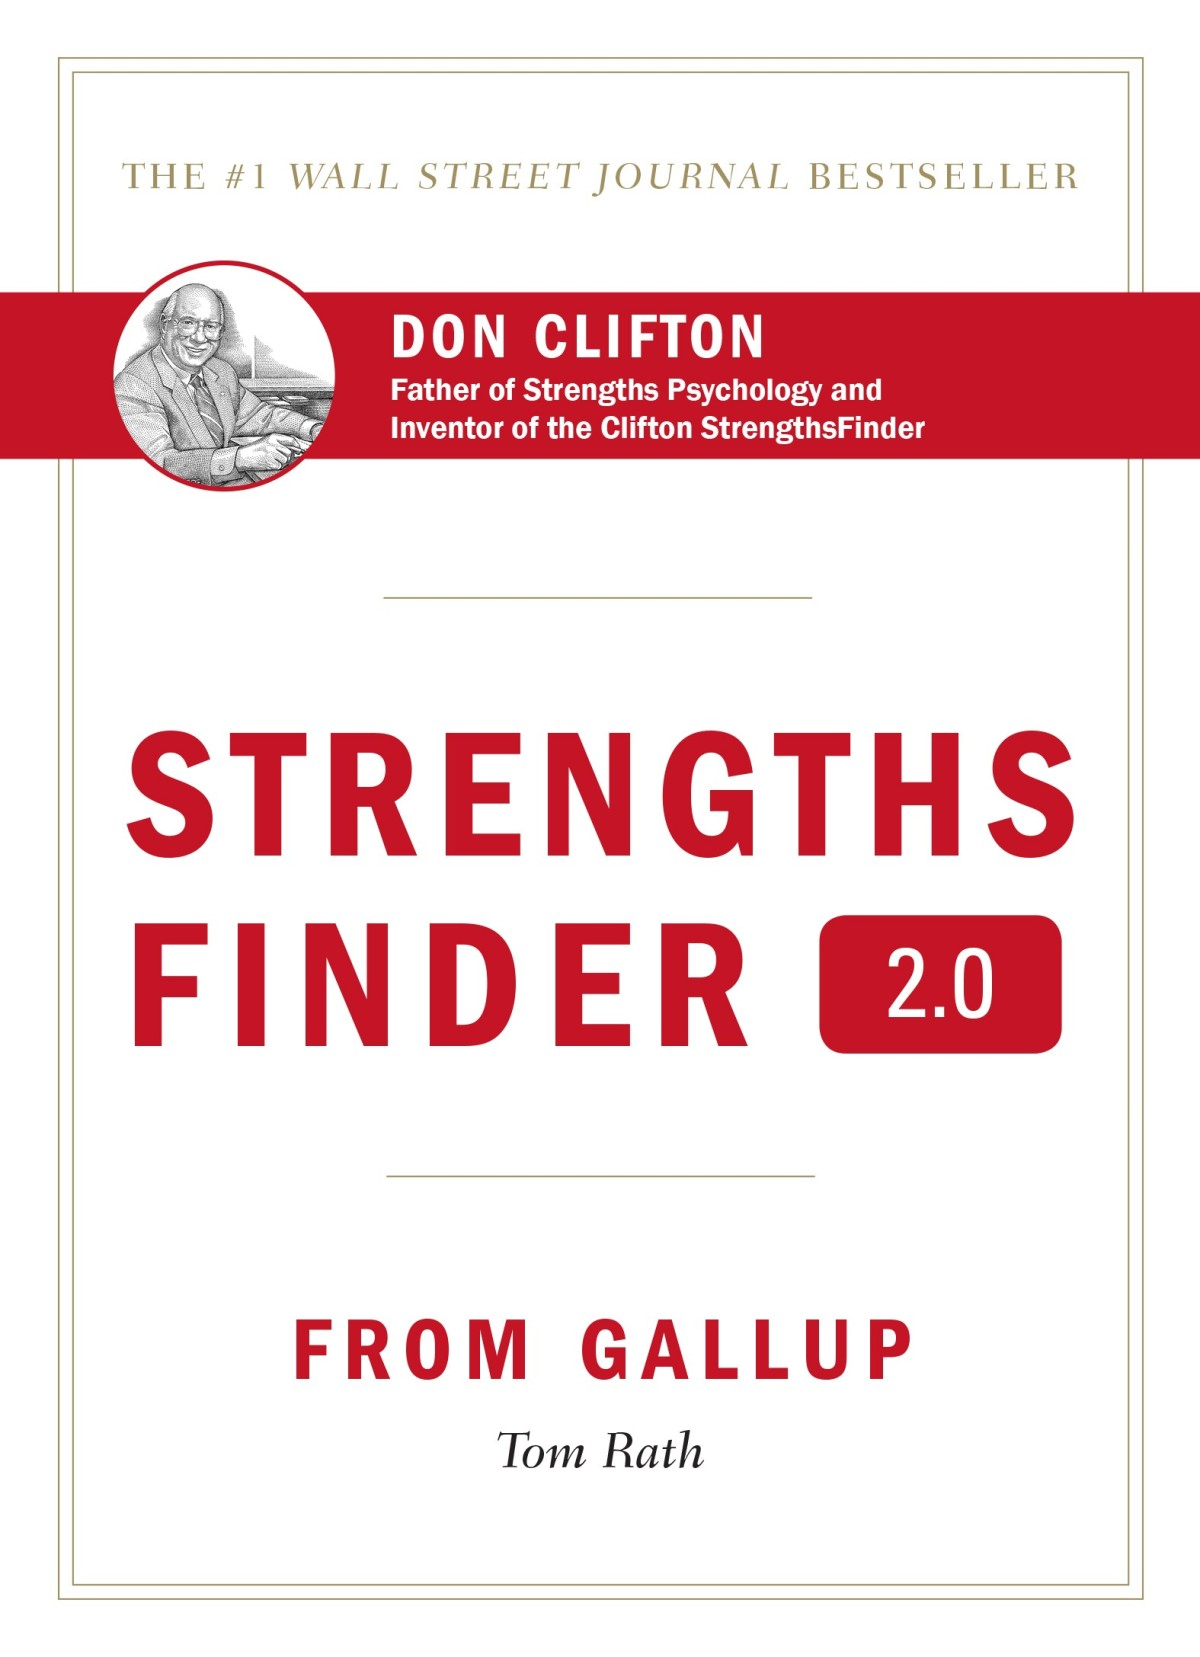 Strengths Finder 2.0 – Gallup